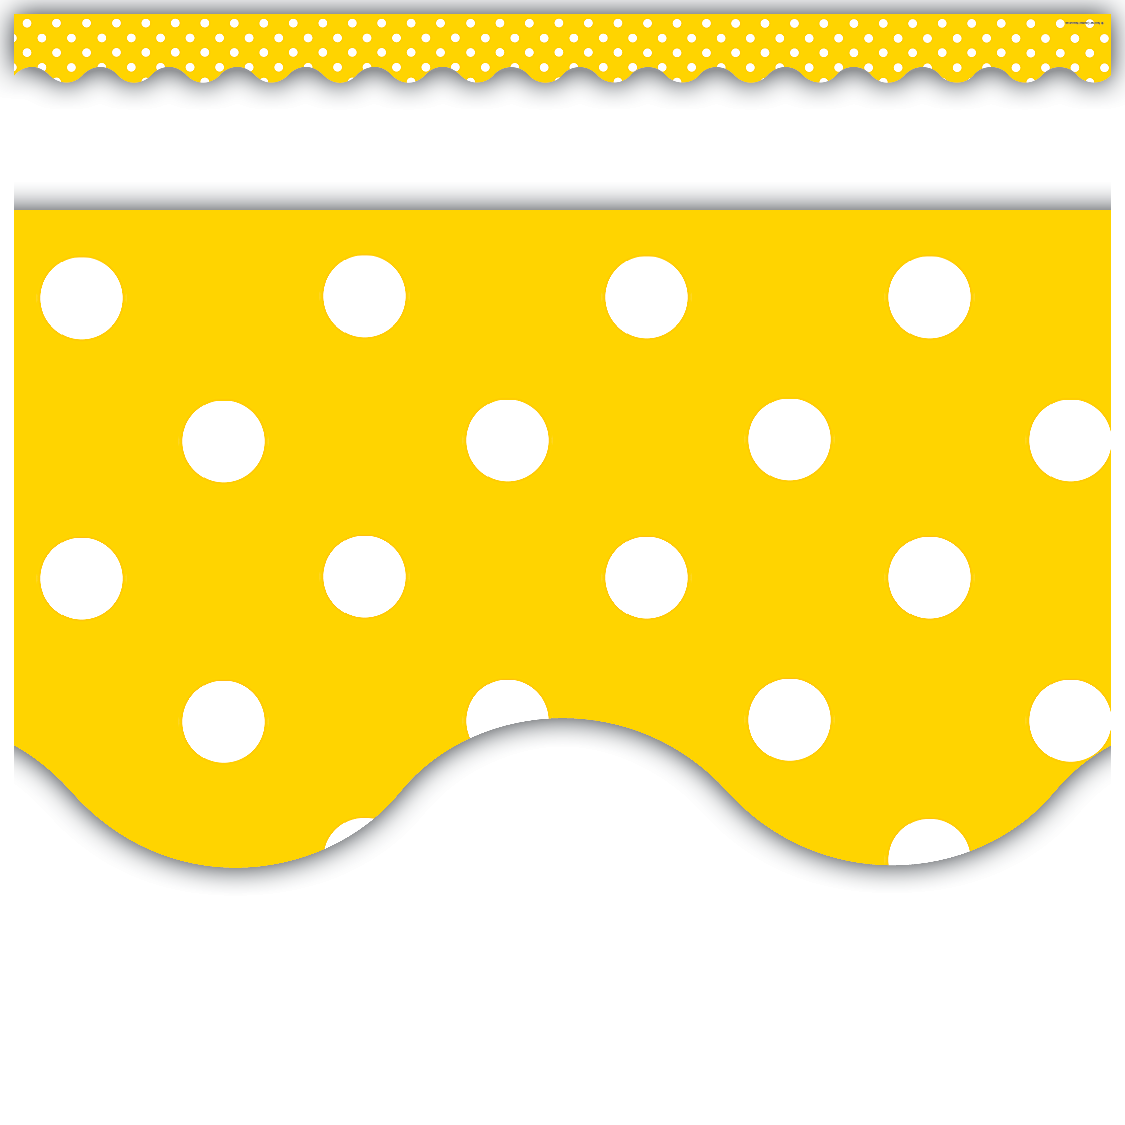 Yellow Polka Dots Scalloped Border Trim | Bulletin board and ...